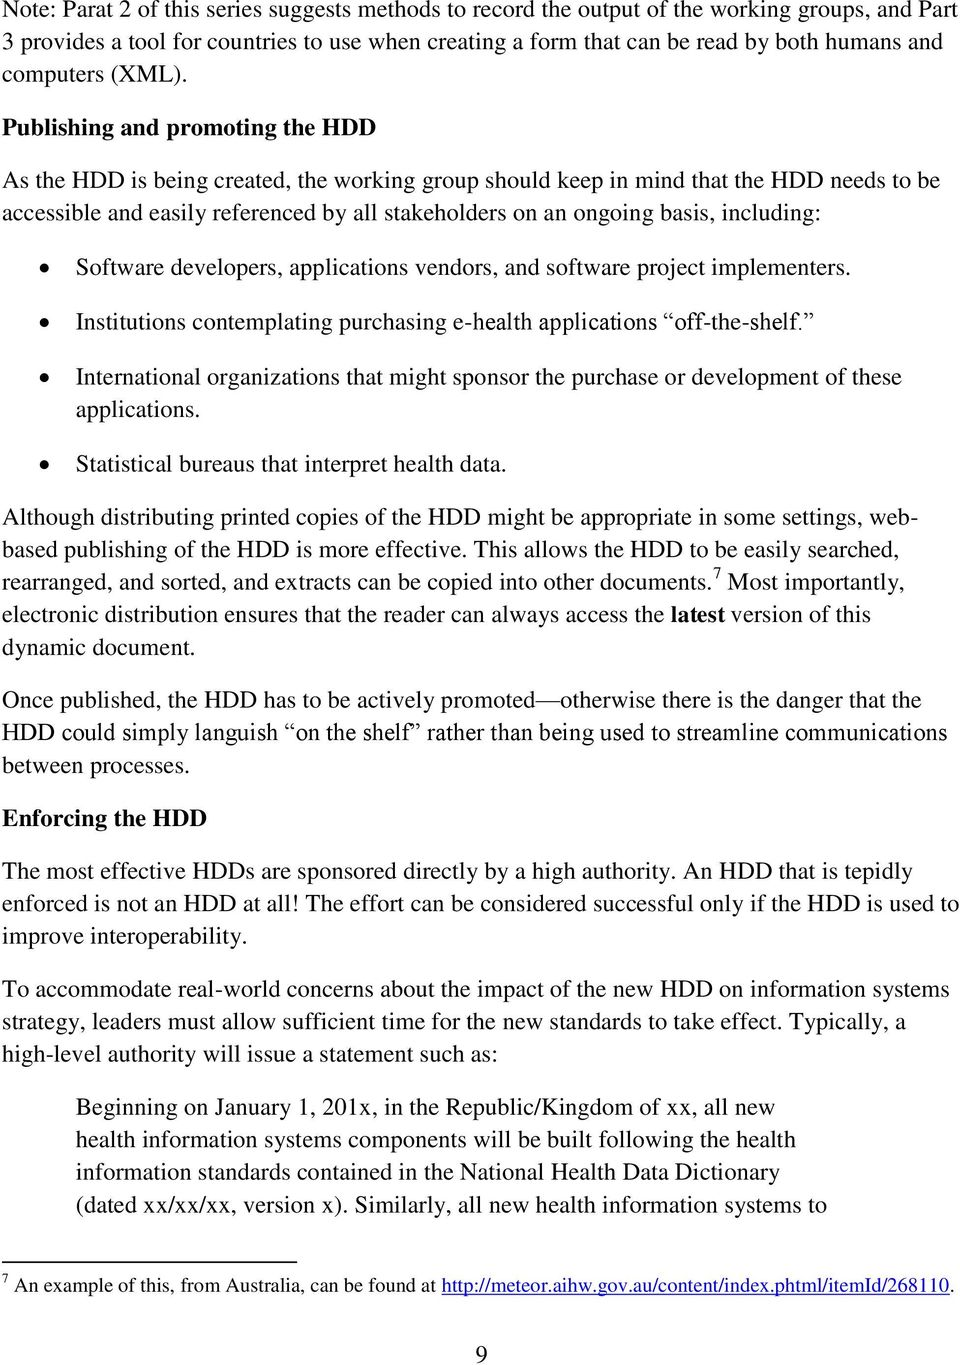 Publishing and promoting the HDD As the HDD is being created, the working group should keep in mind that the HDD needs to be accessible and easily referenced by all stakeholders on an ongoing basis,